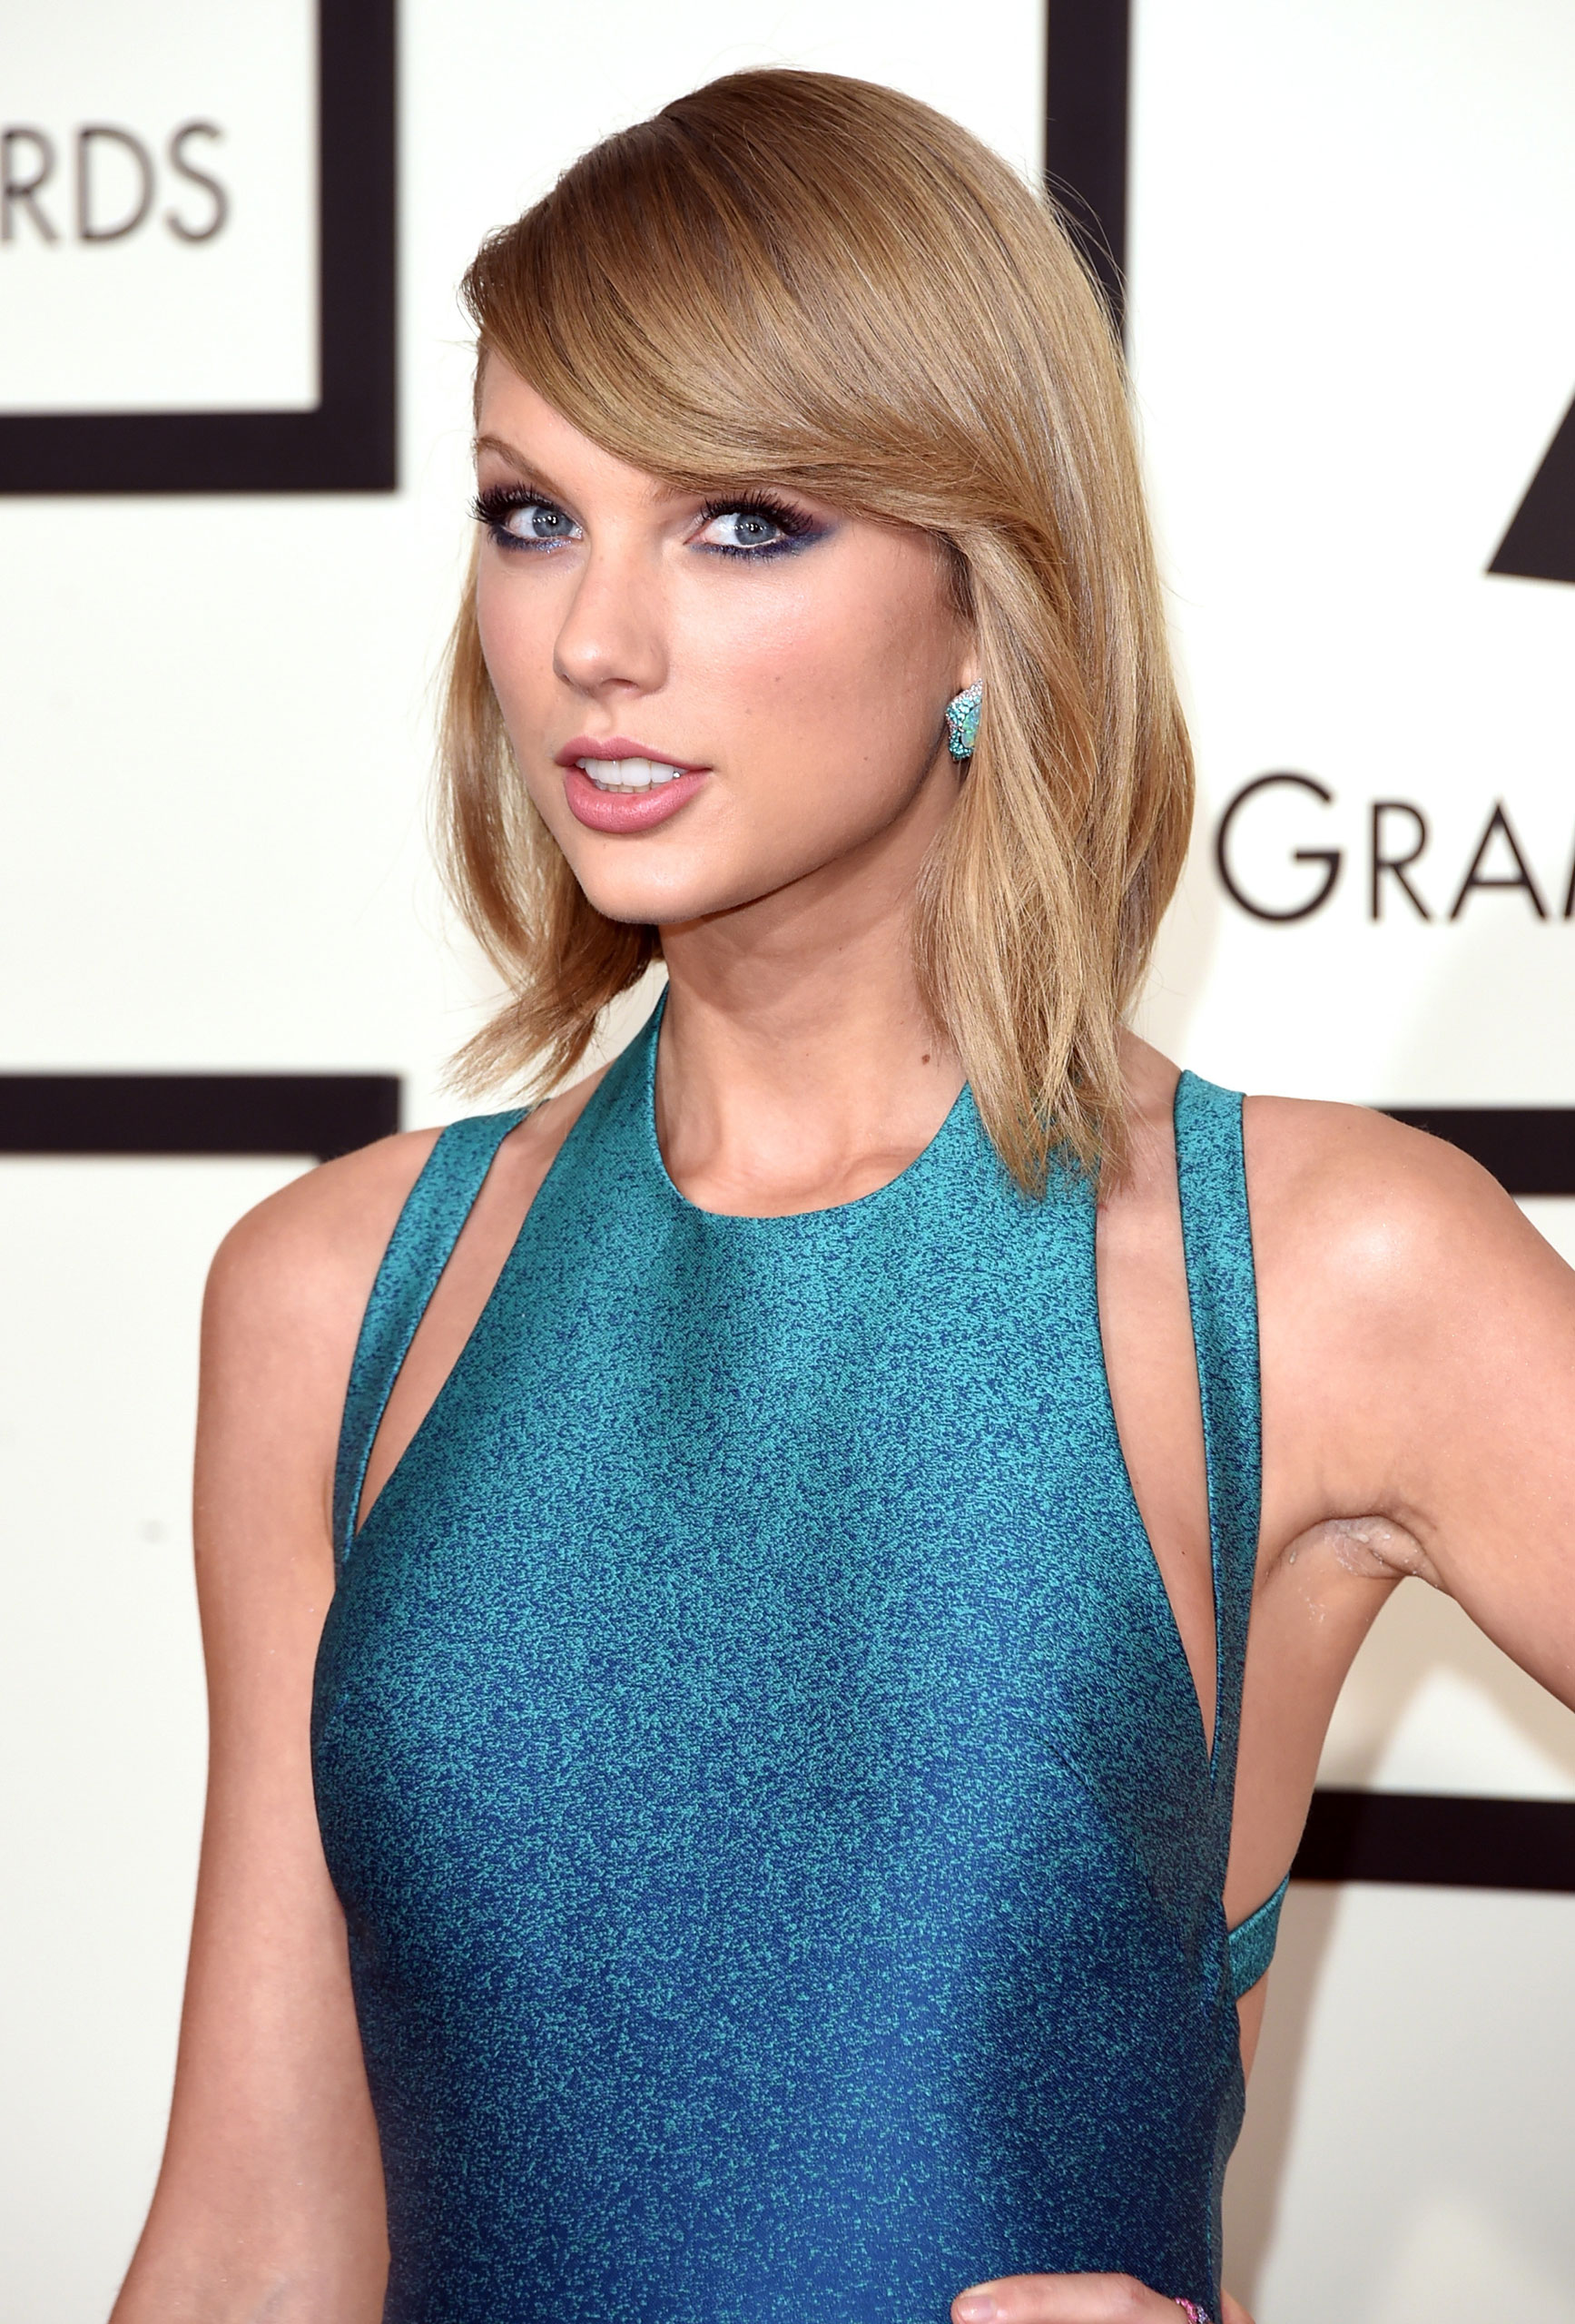 Taylor Swift attends the 57th Annual Grammy Awards at the Staples Center on Feb. 8, 2015 in Los Angeles, Calif.